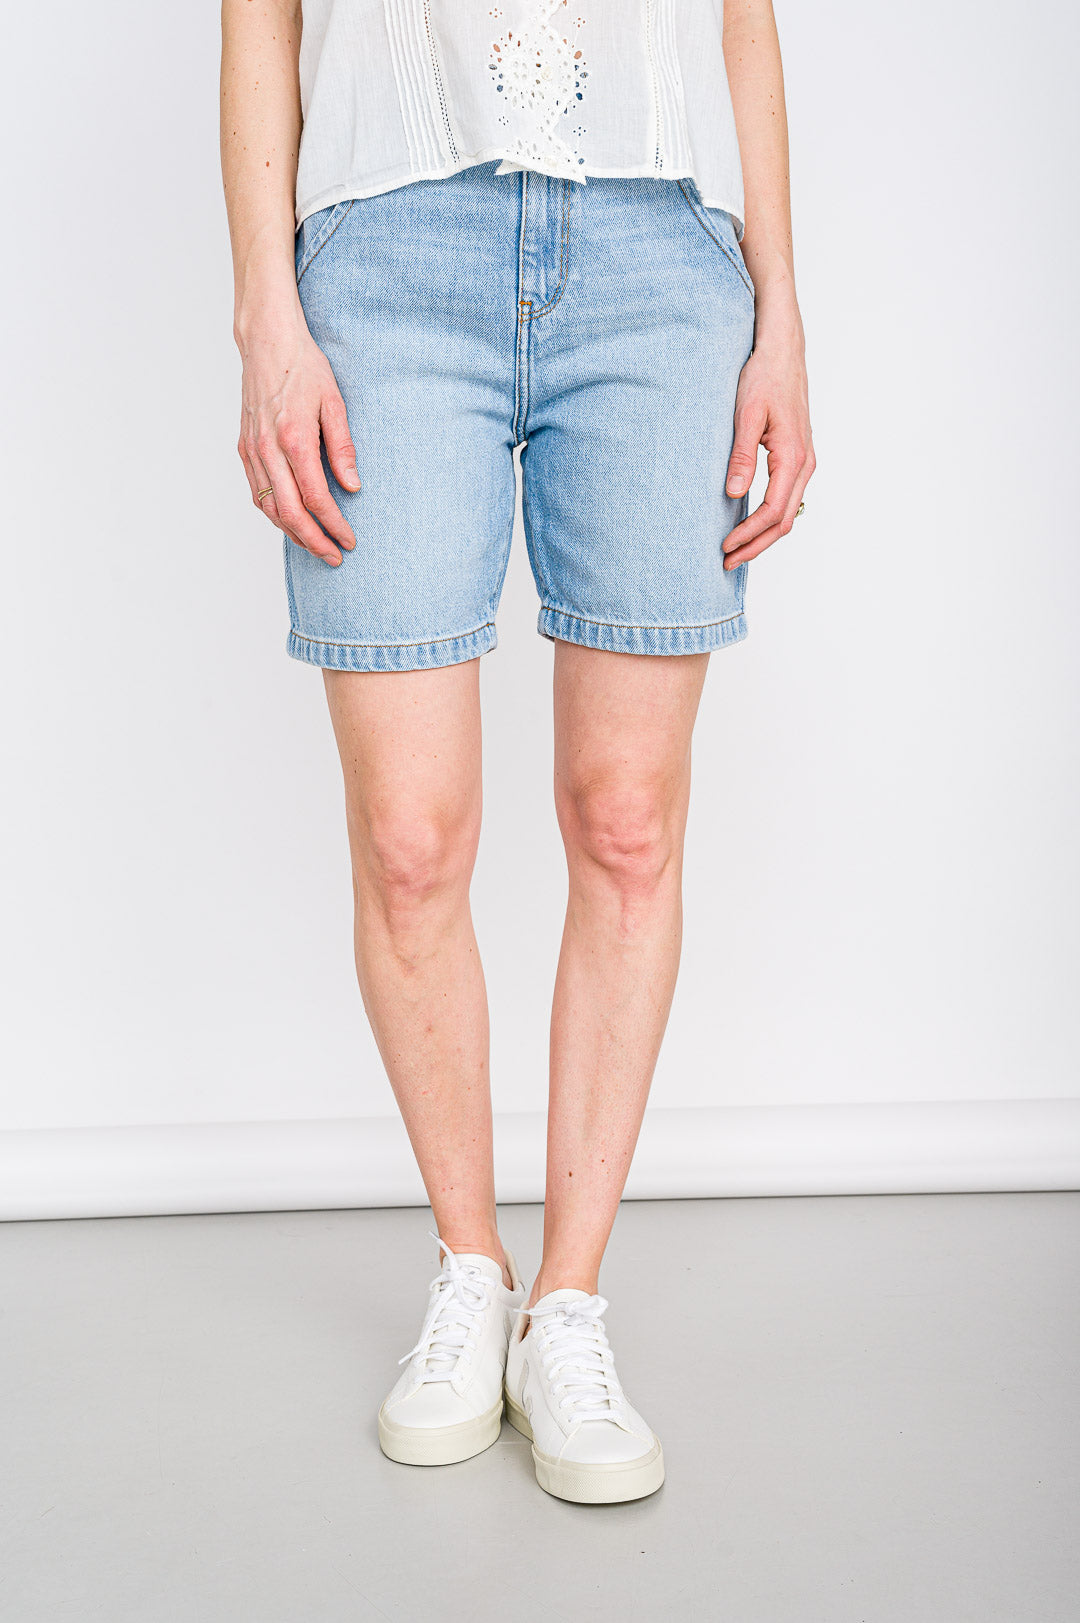 Leon&Harper // Short Quatty Denim